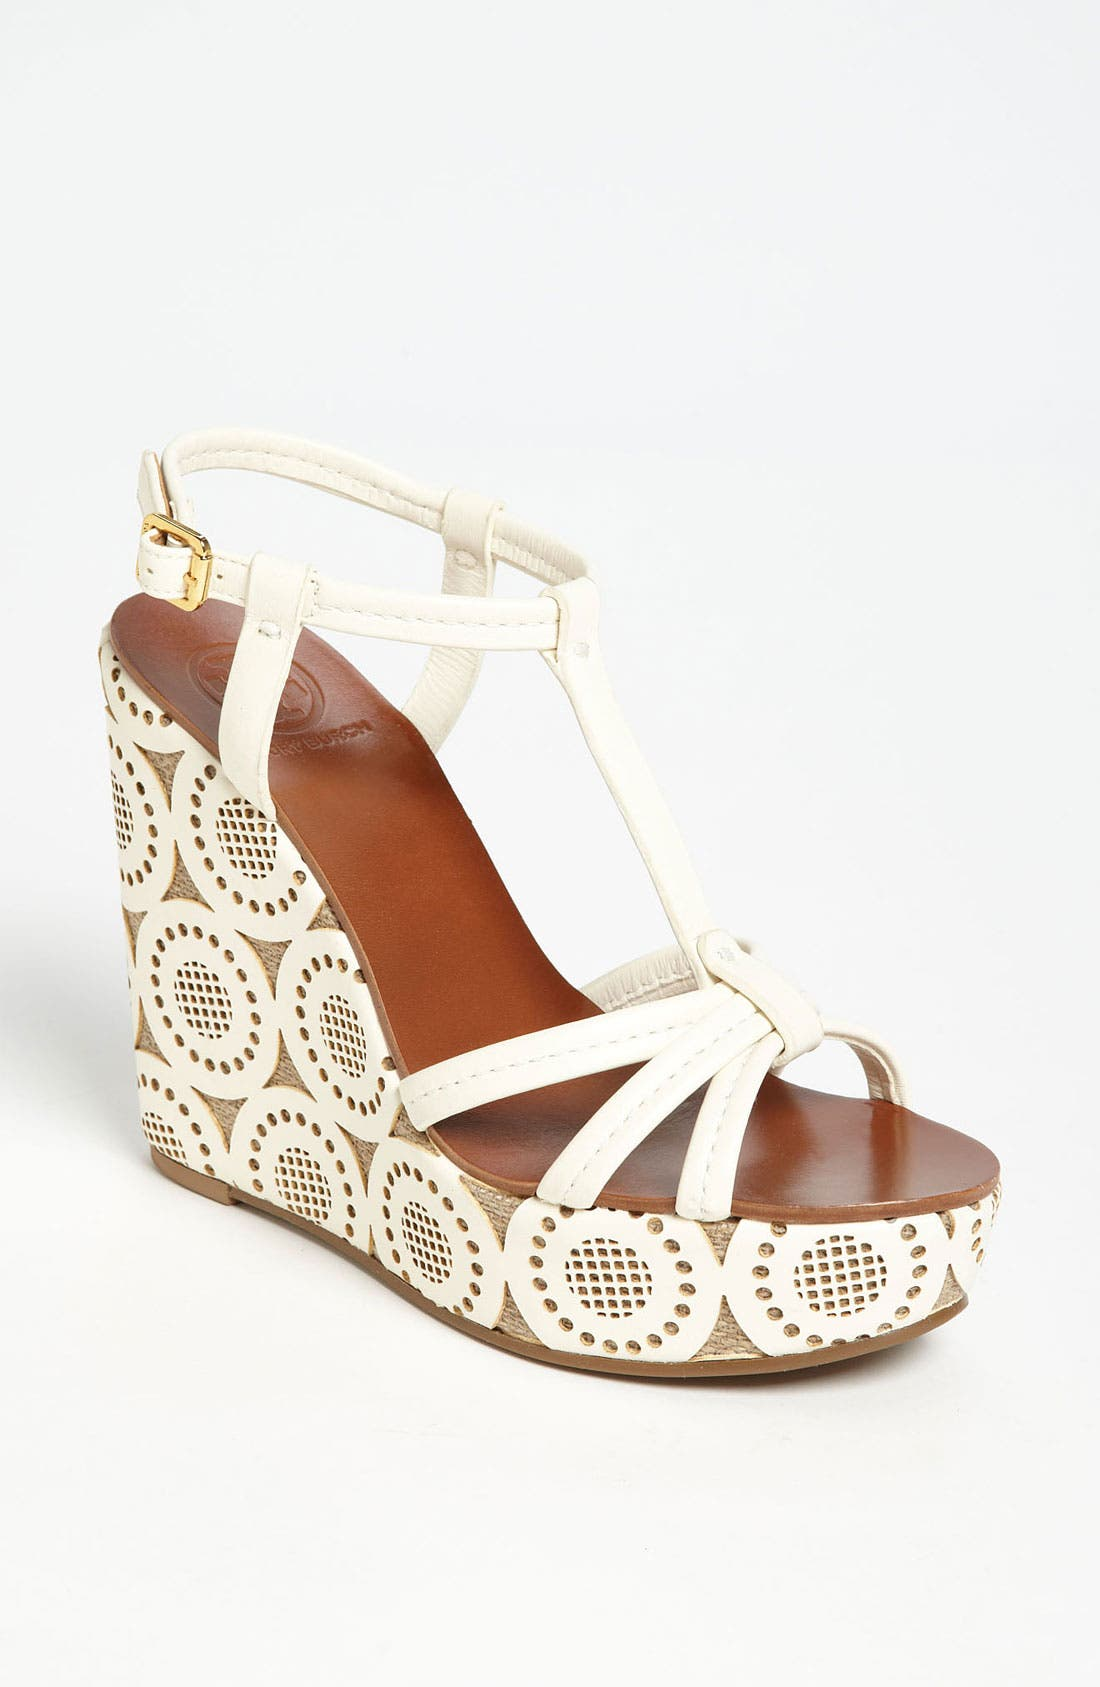 Alternate Image 1 Selected - Tory Burch 'Ida' Wedge